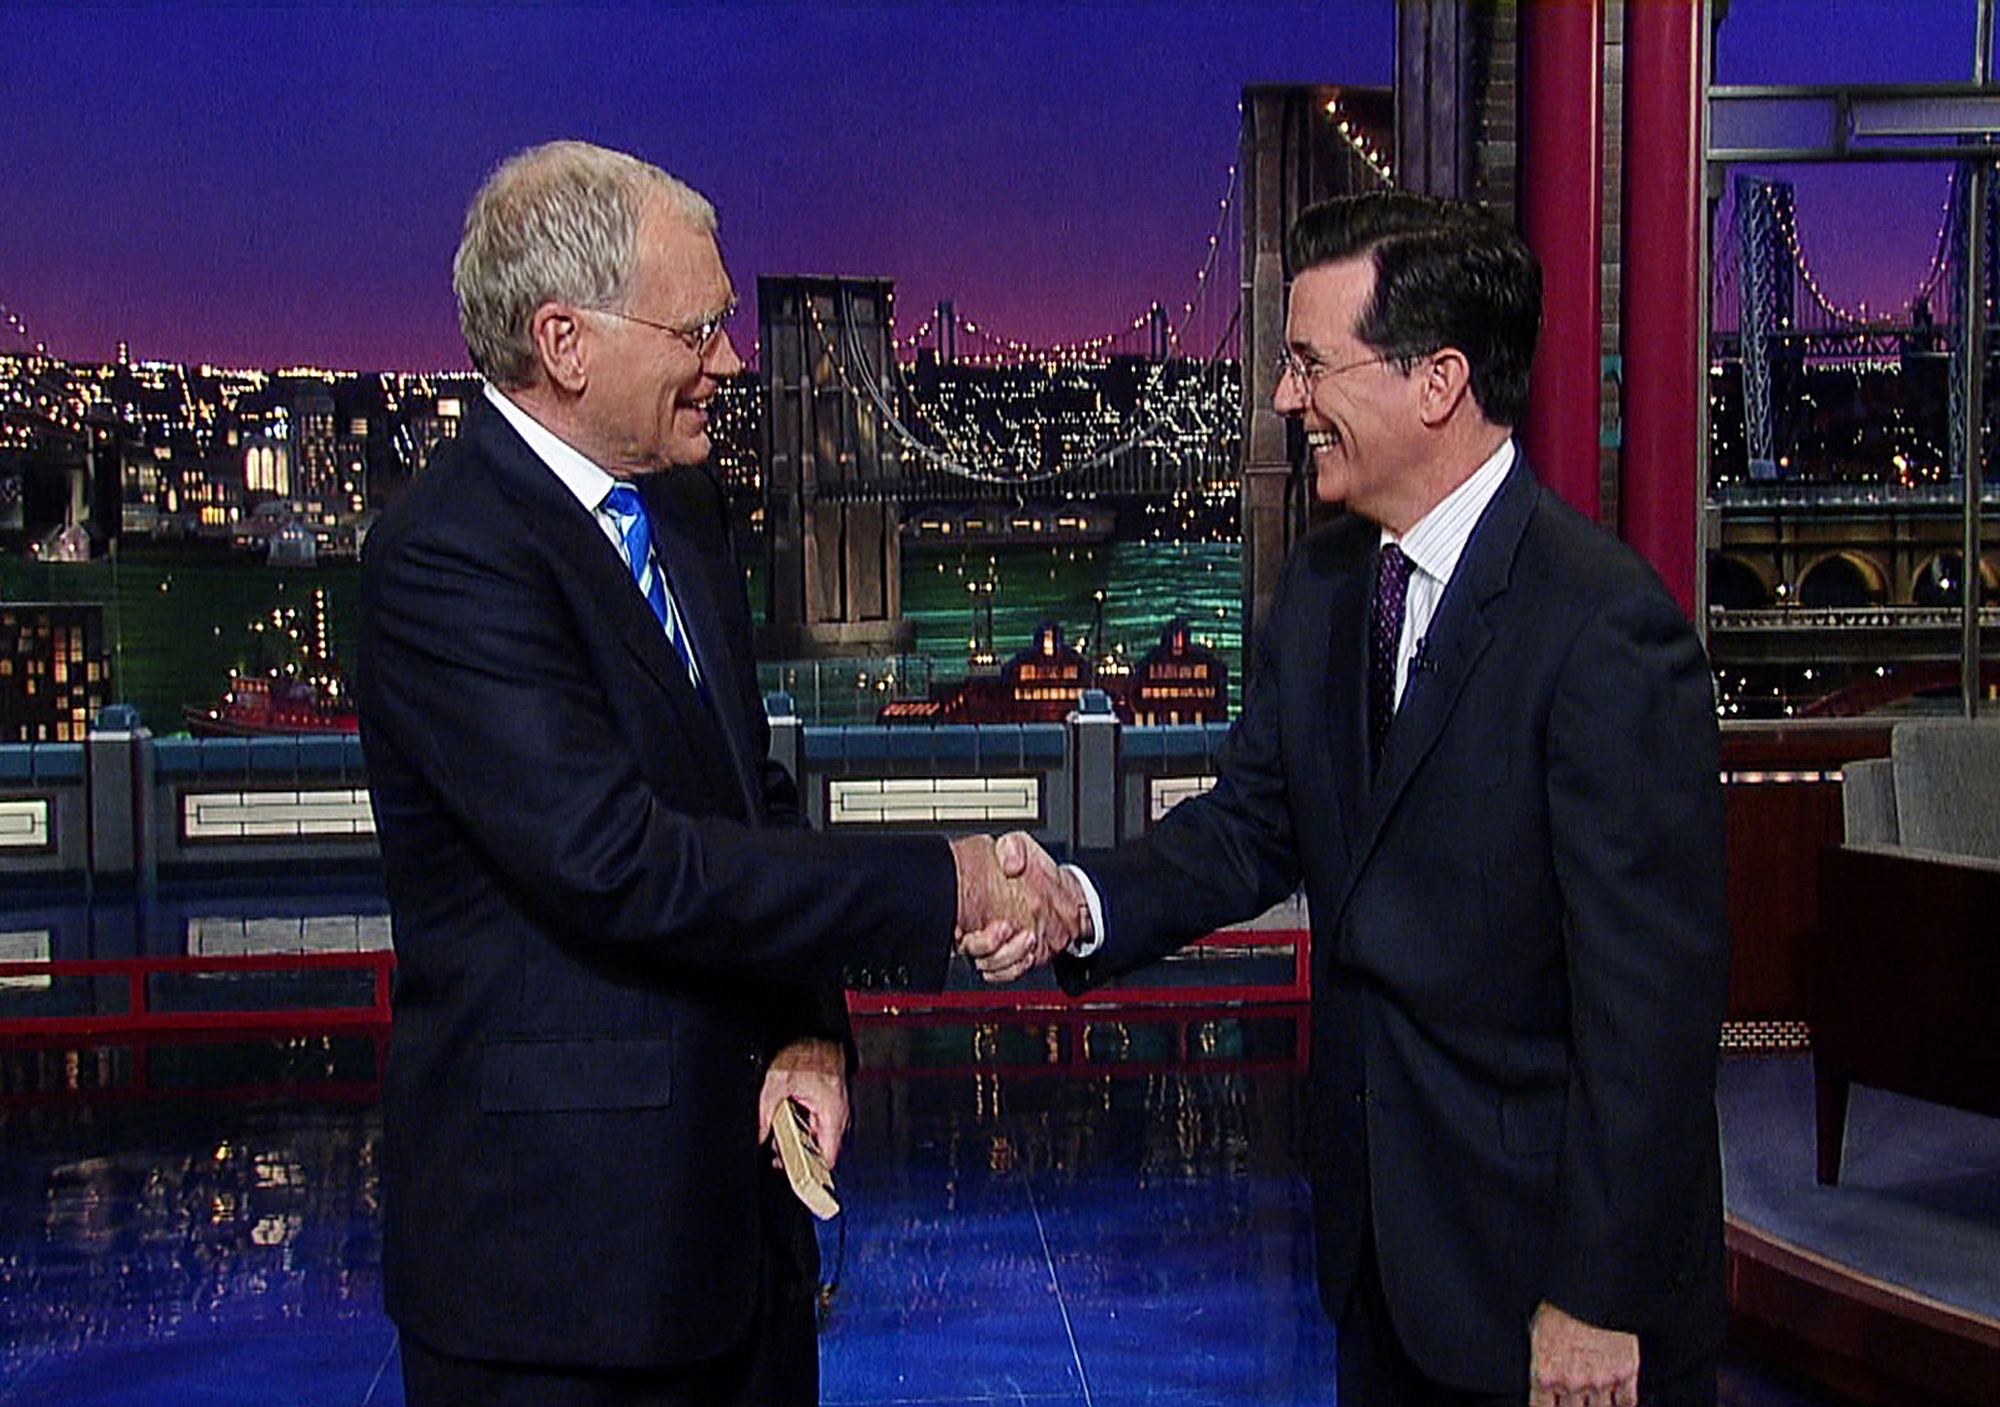 """This May 4, 2011, image from video released by CBS shows host David Letterman, left, shaking hands with fellow talk show host Stephen Colbert of """"The Colbert Report,"""" during a surprise visit on the """"Late Show with David Letterman,"""" in New York."""